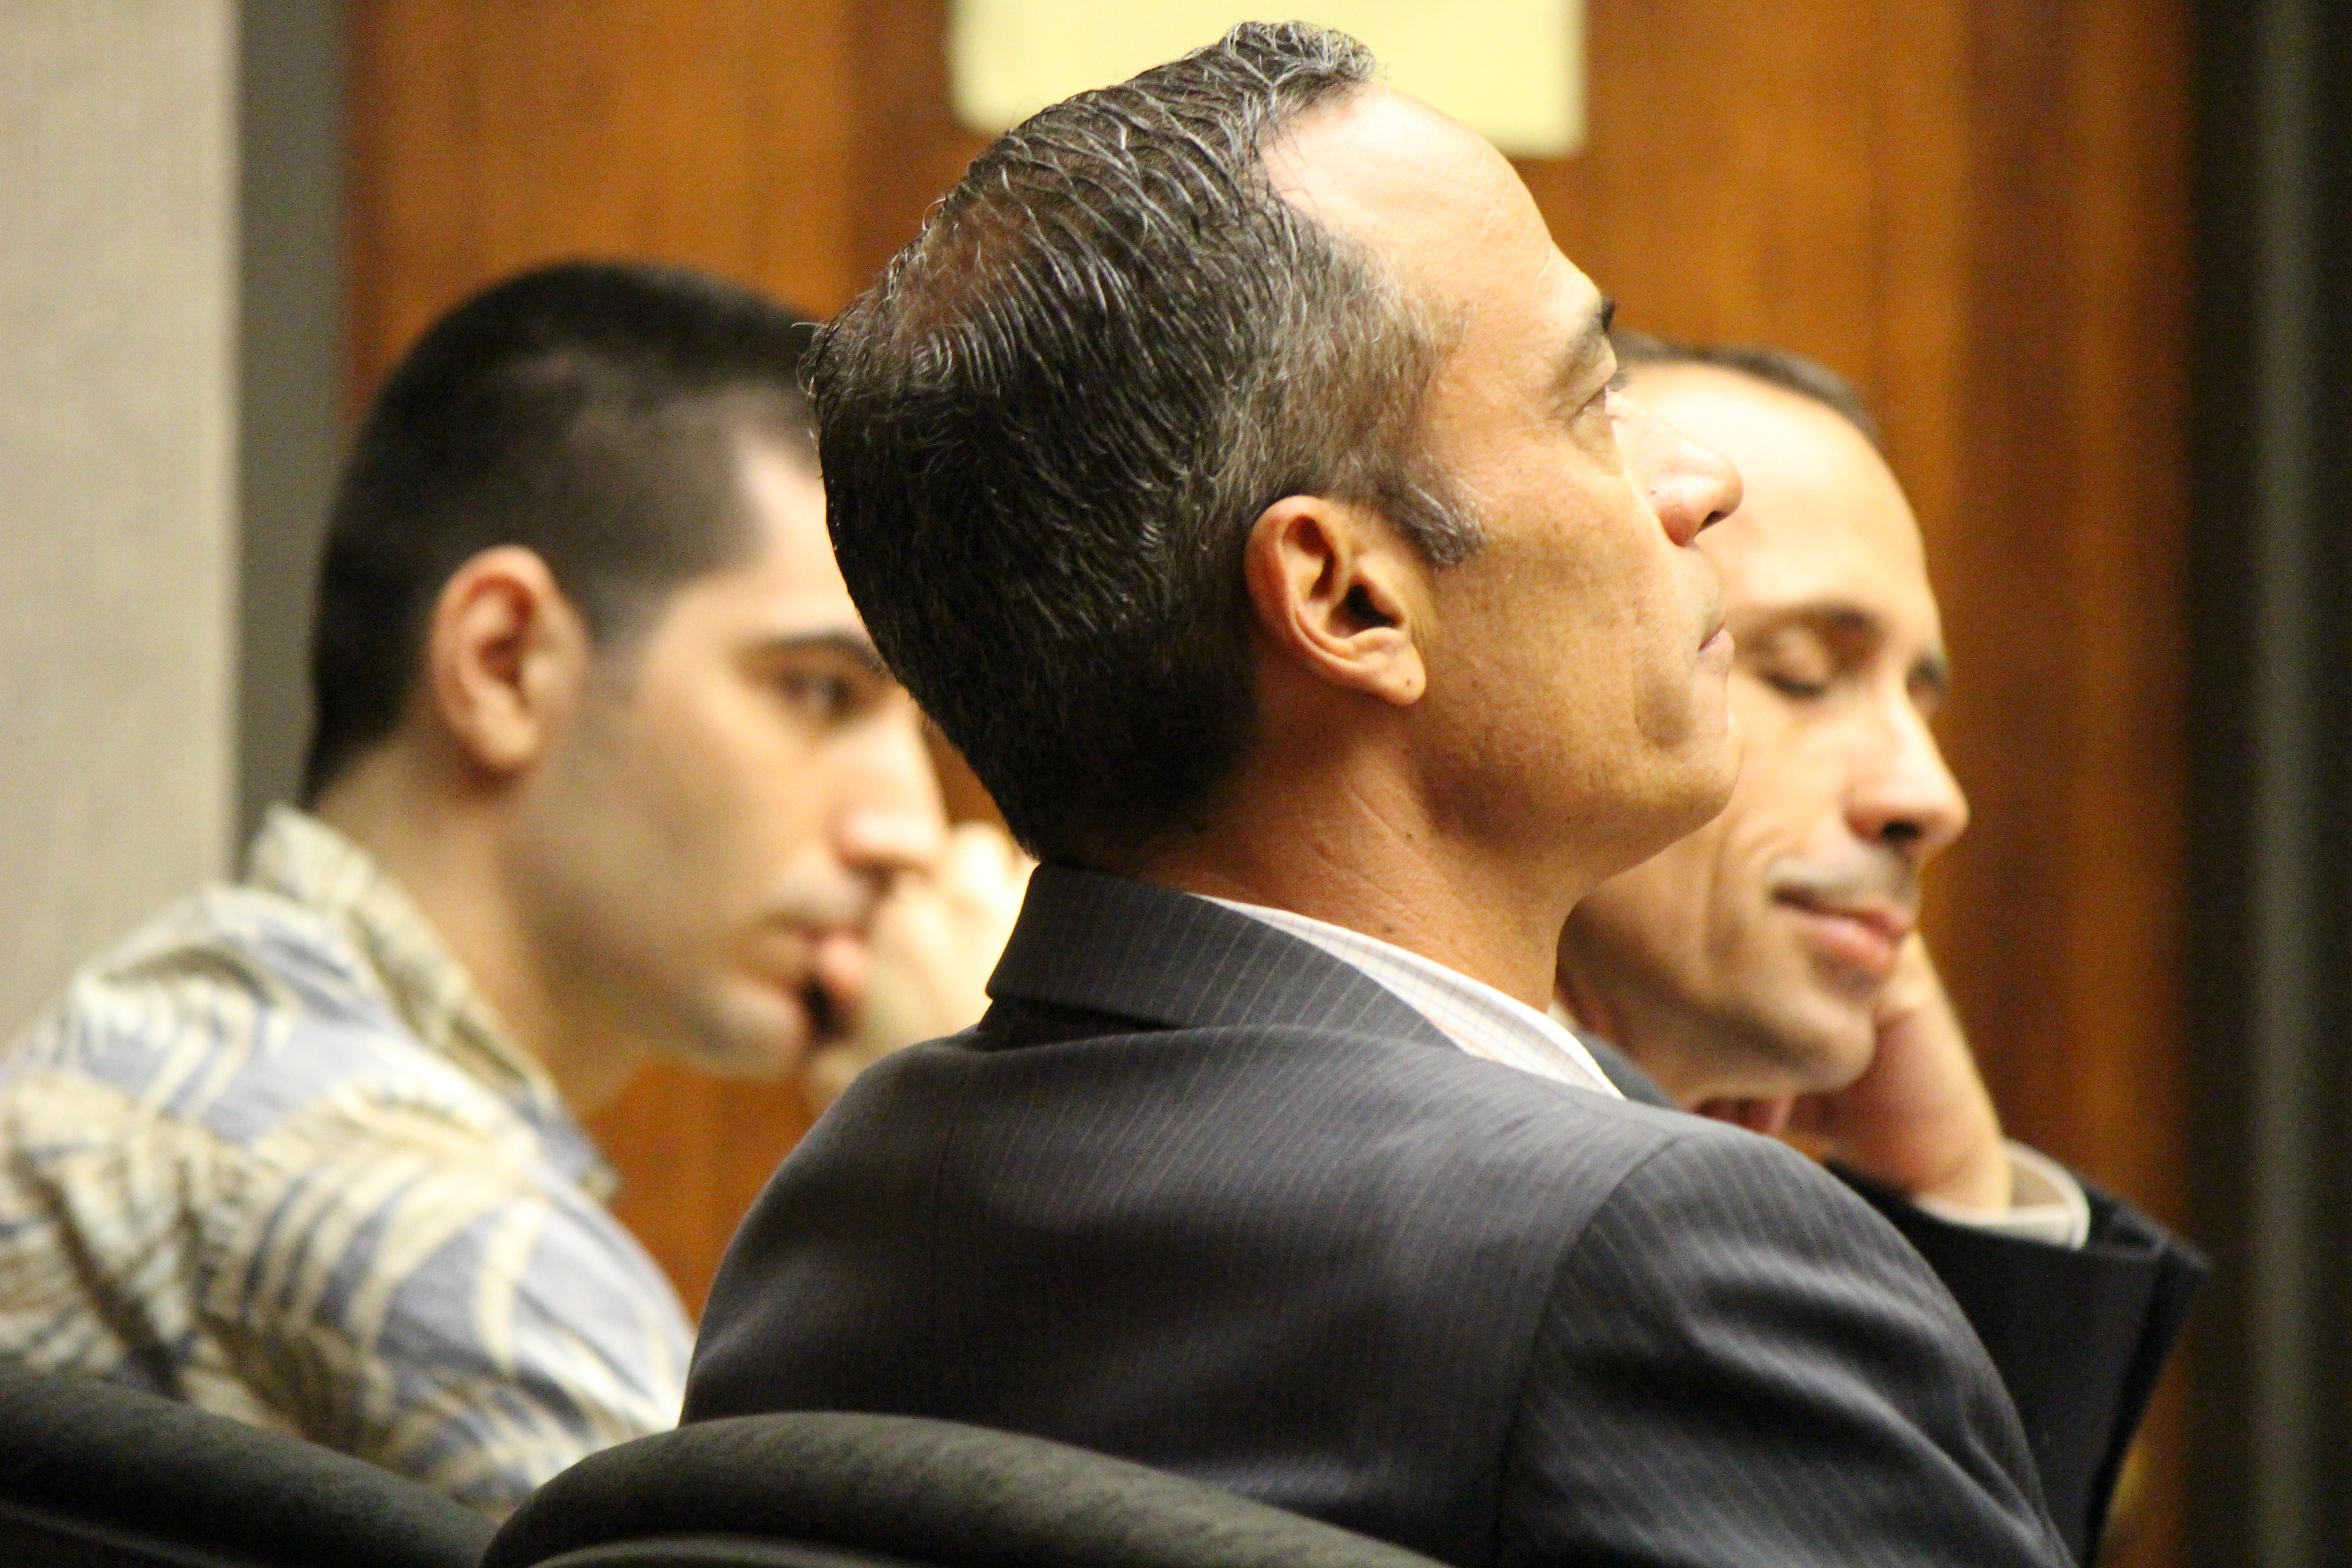 State v Capobianco trail. Defense Attorney Jon Apo in foreground (right) with fellow defense attorney Matthew Nardi (left) and defendant Steven Capobianco (background middle) . PC: 12.01.16 by Wendy Osher.